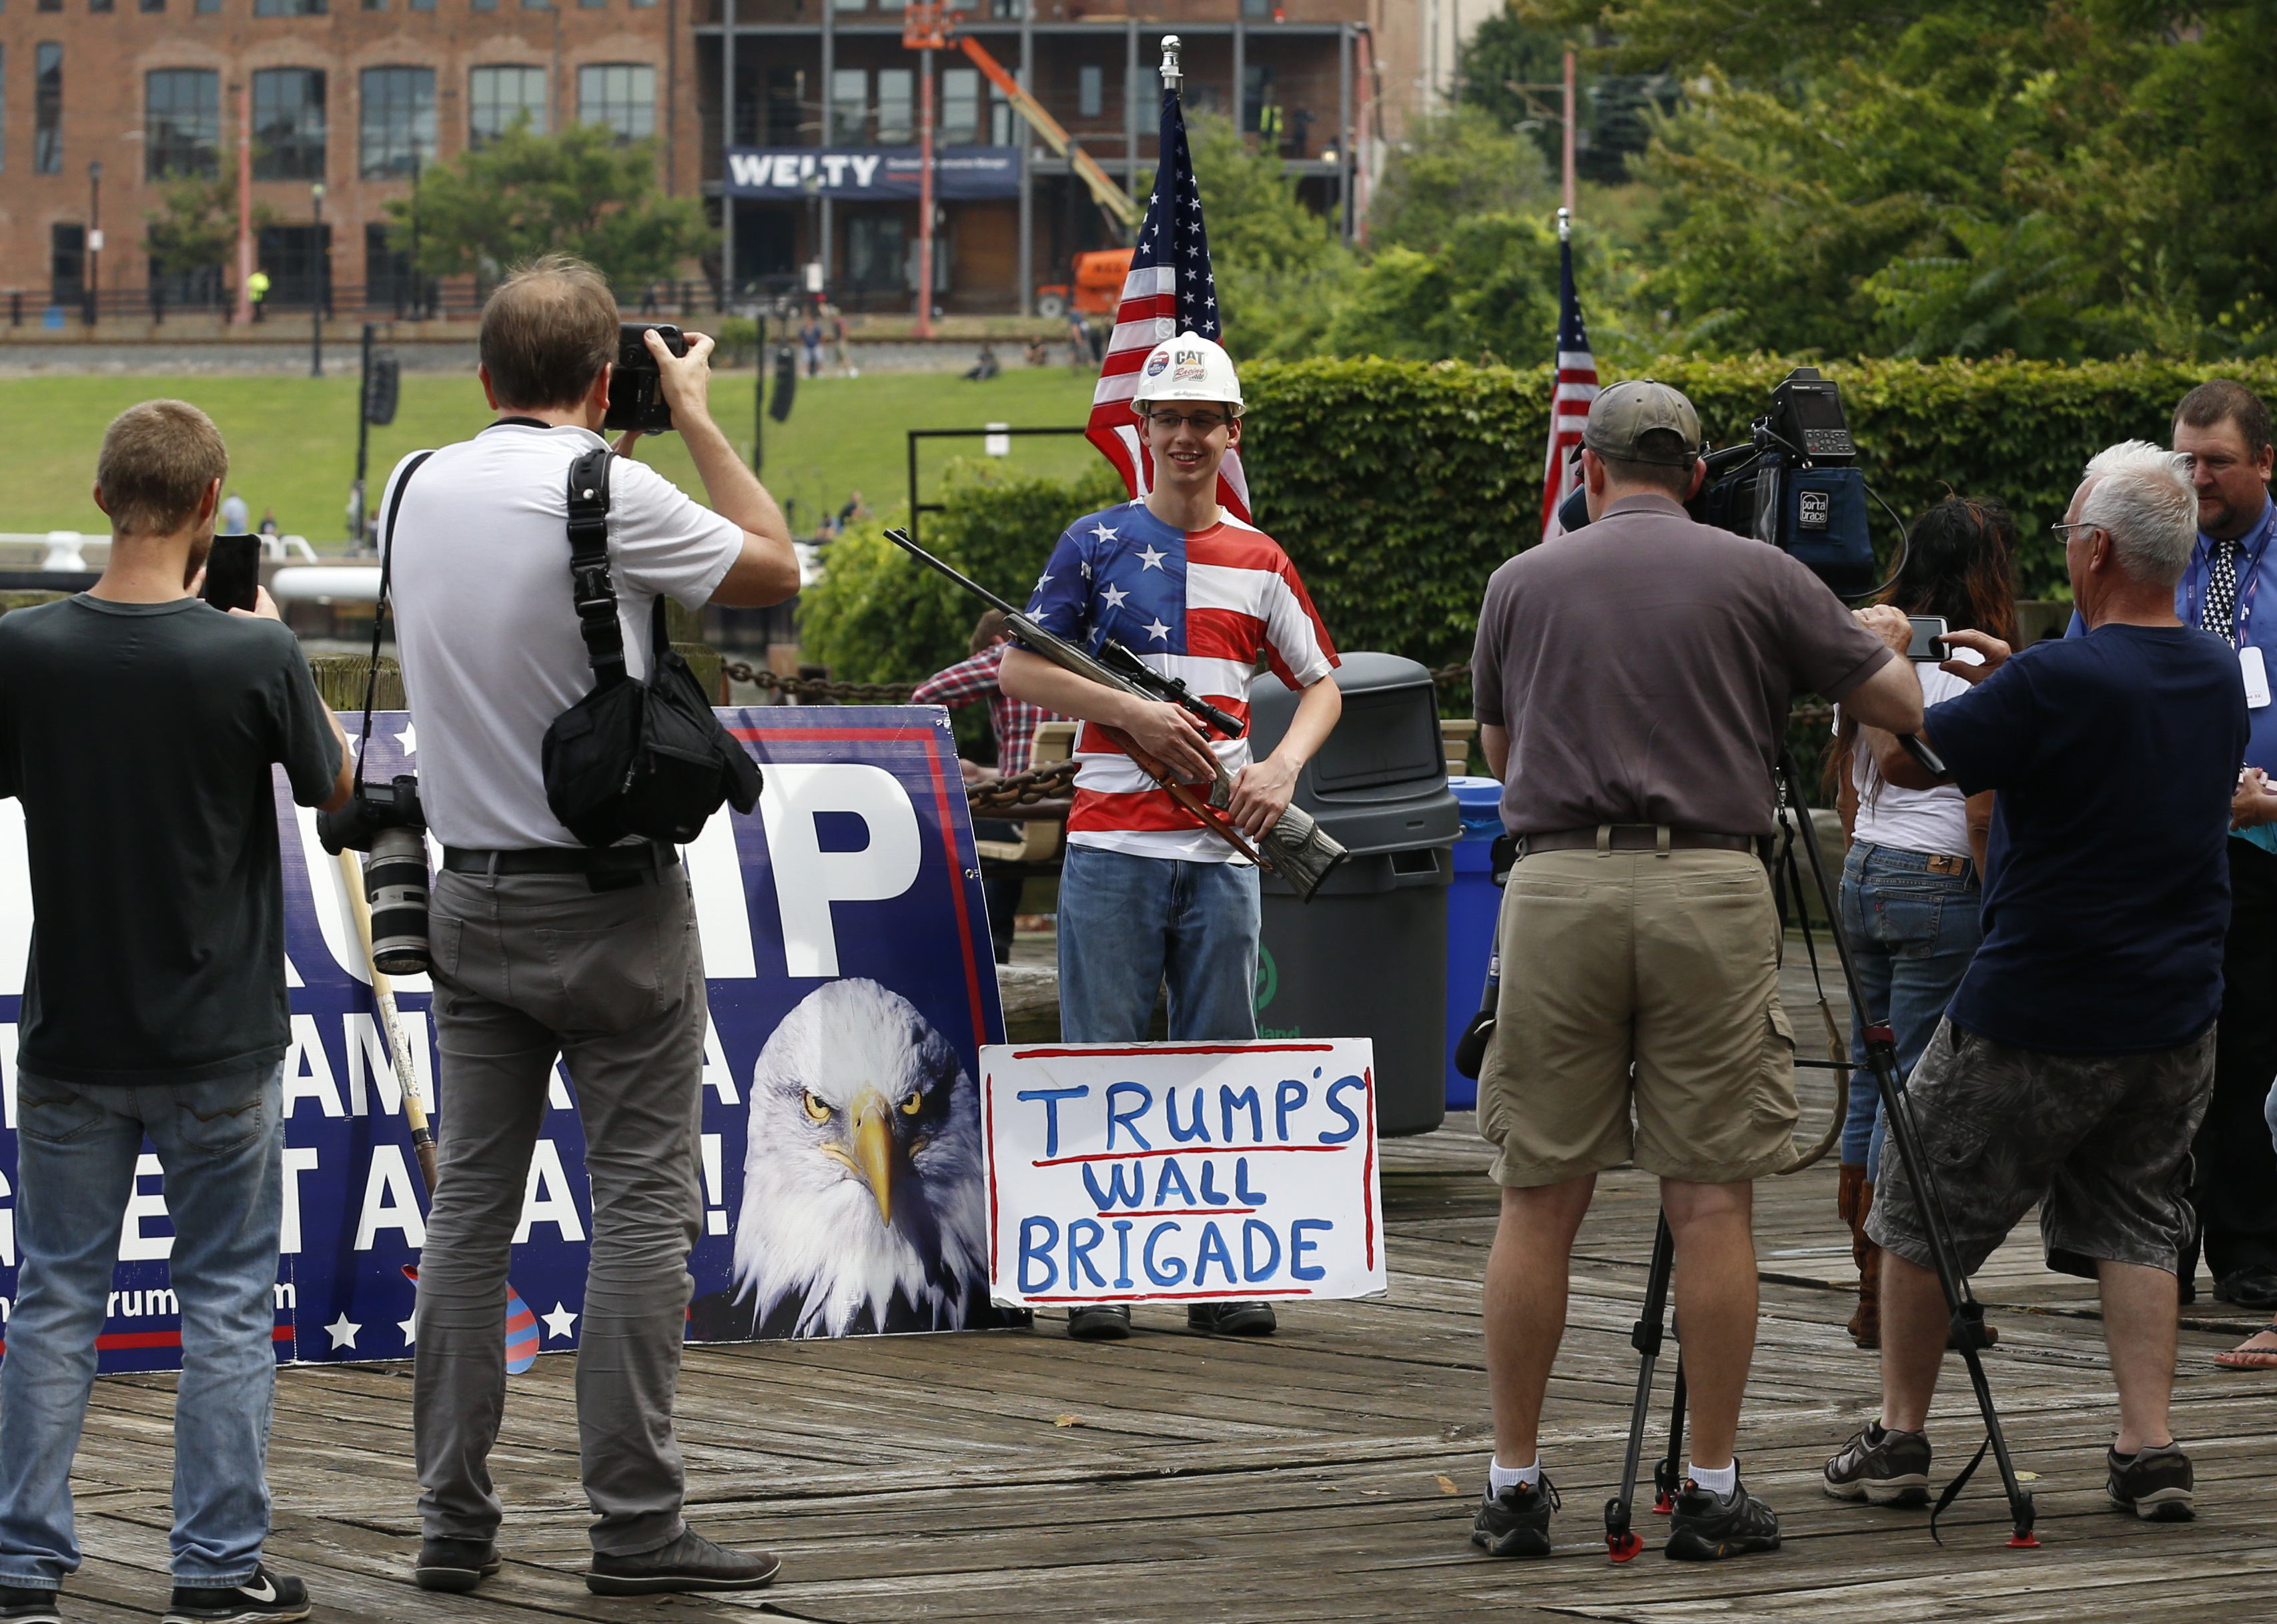 A supporter of Republican presidential candidate Donald Trump poses with a rifle while waiting for a pro-Trump rally to begin near the Republican National Convention in Cleveland, Ohio, July 18, 2016.